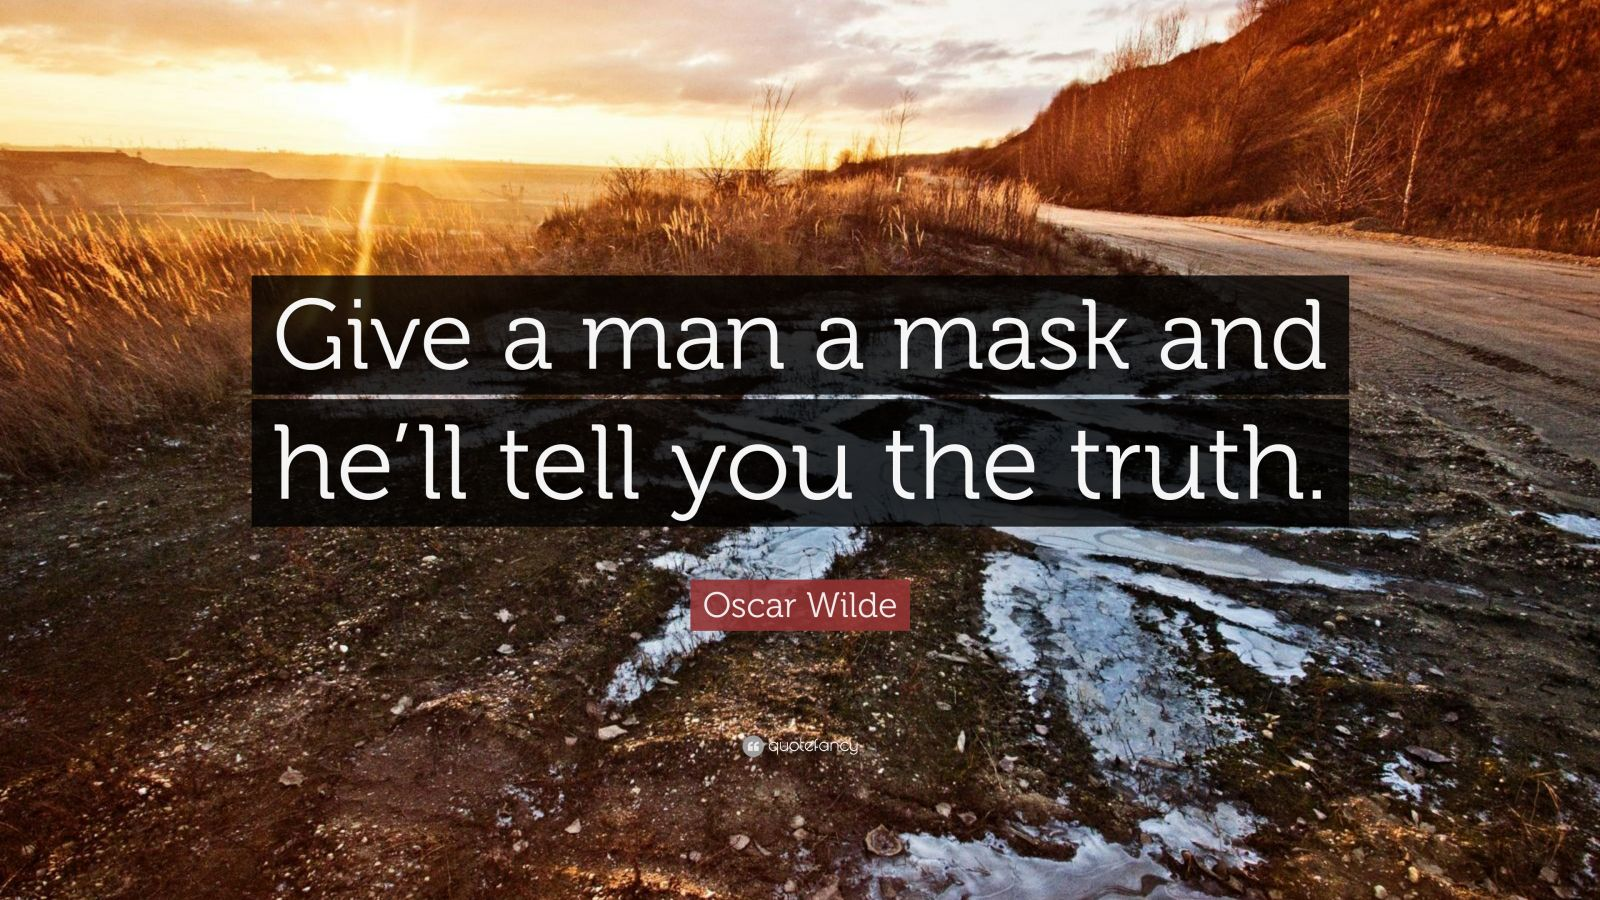 Oscar Wilde Quote: Give a man a mask and hell tell you